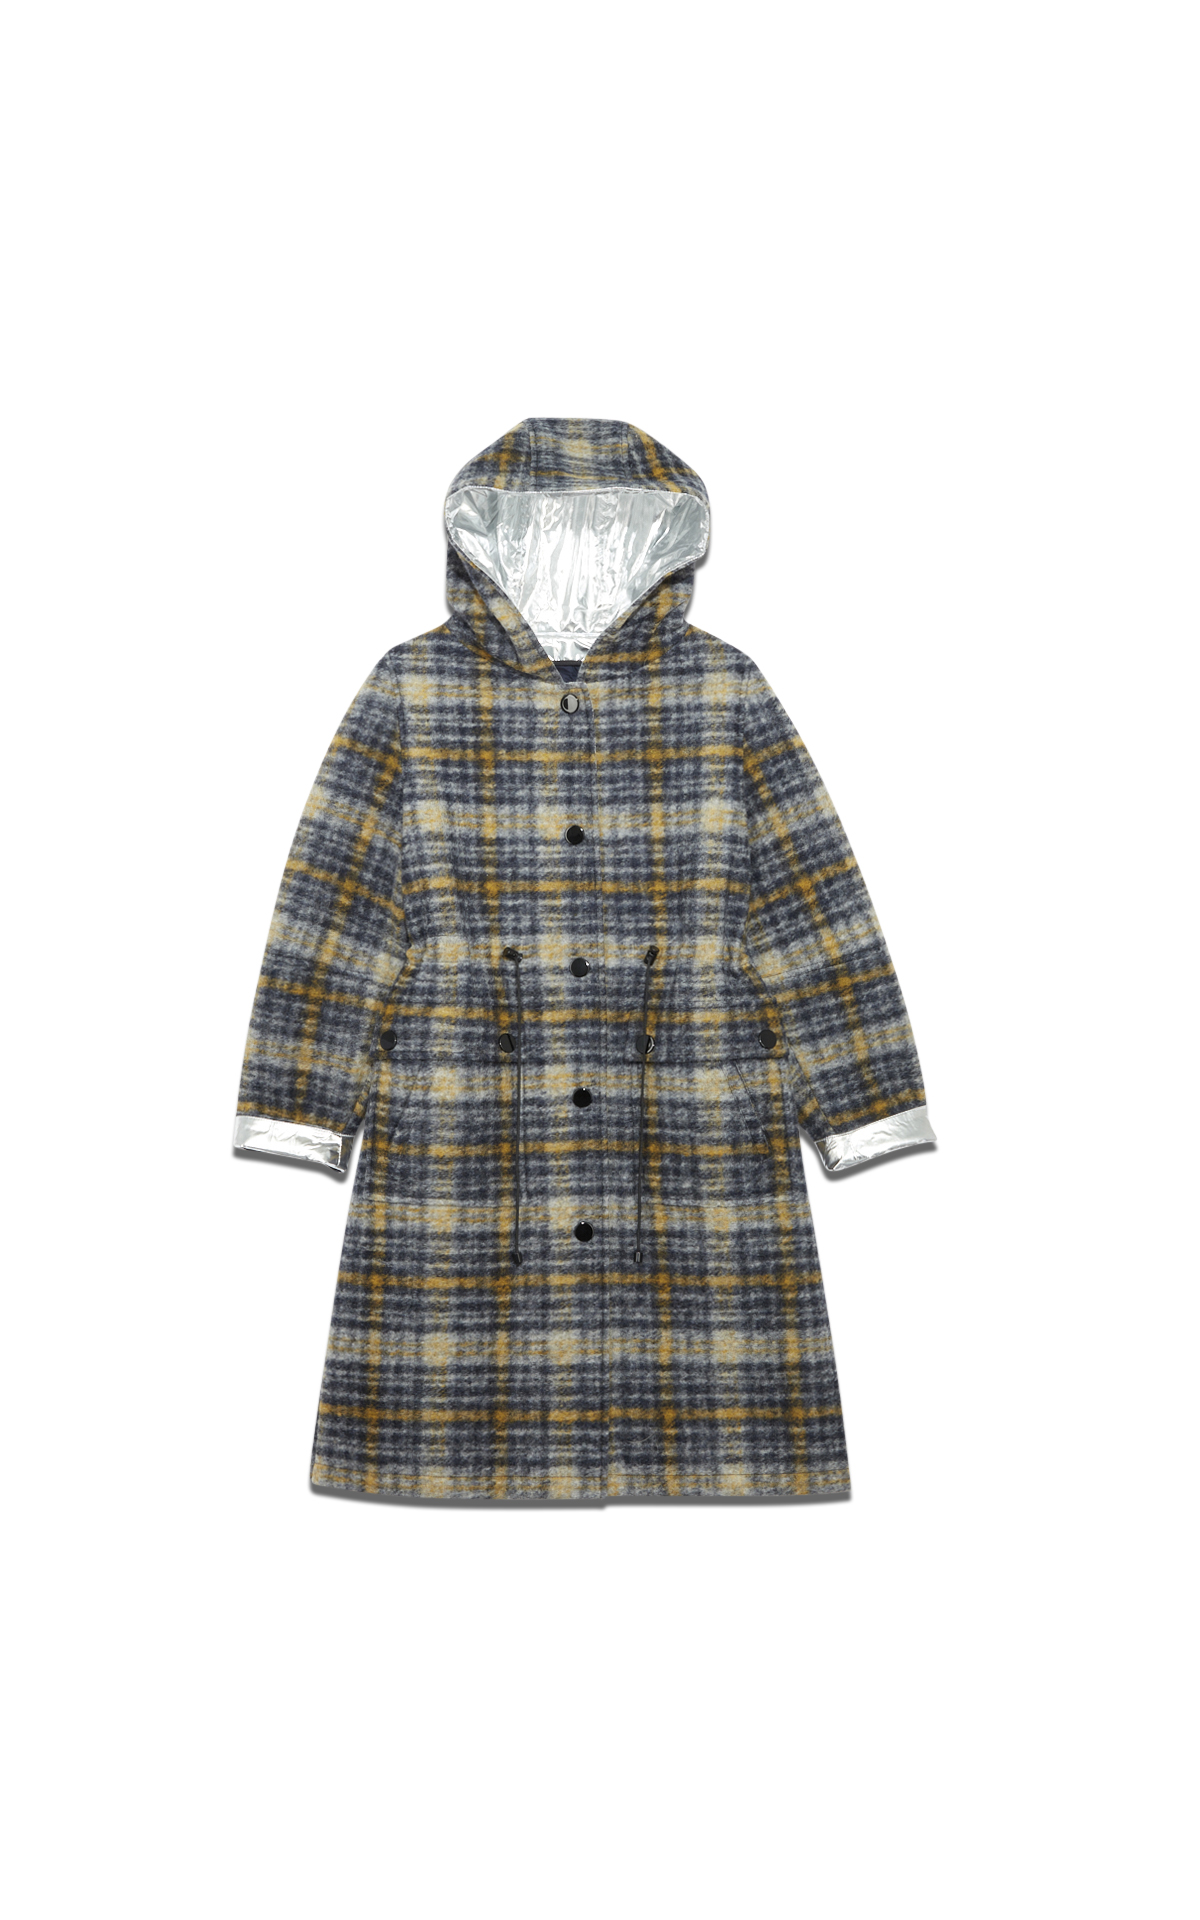 Yves Salomon Silver checked coat